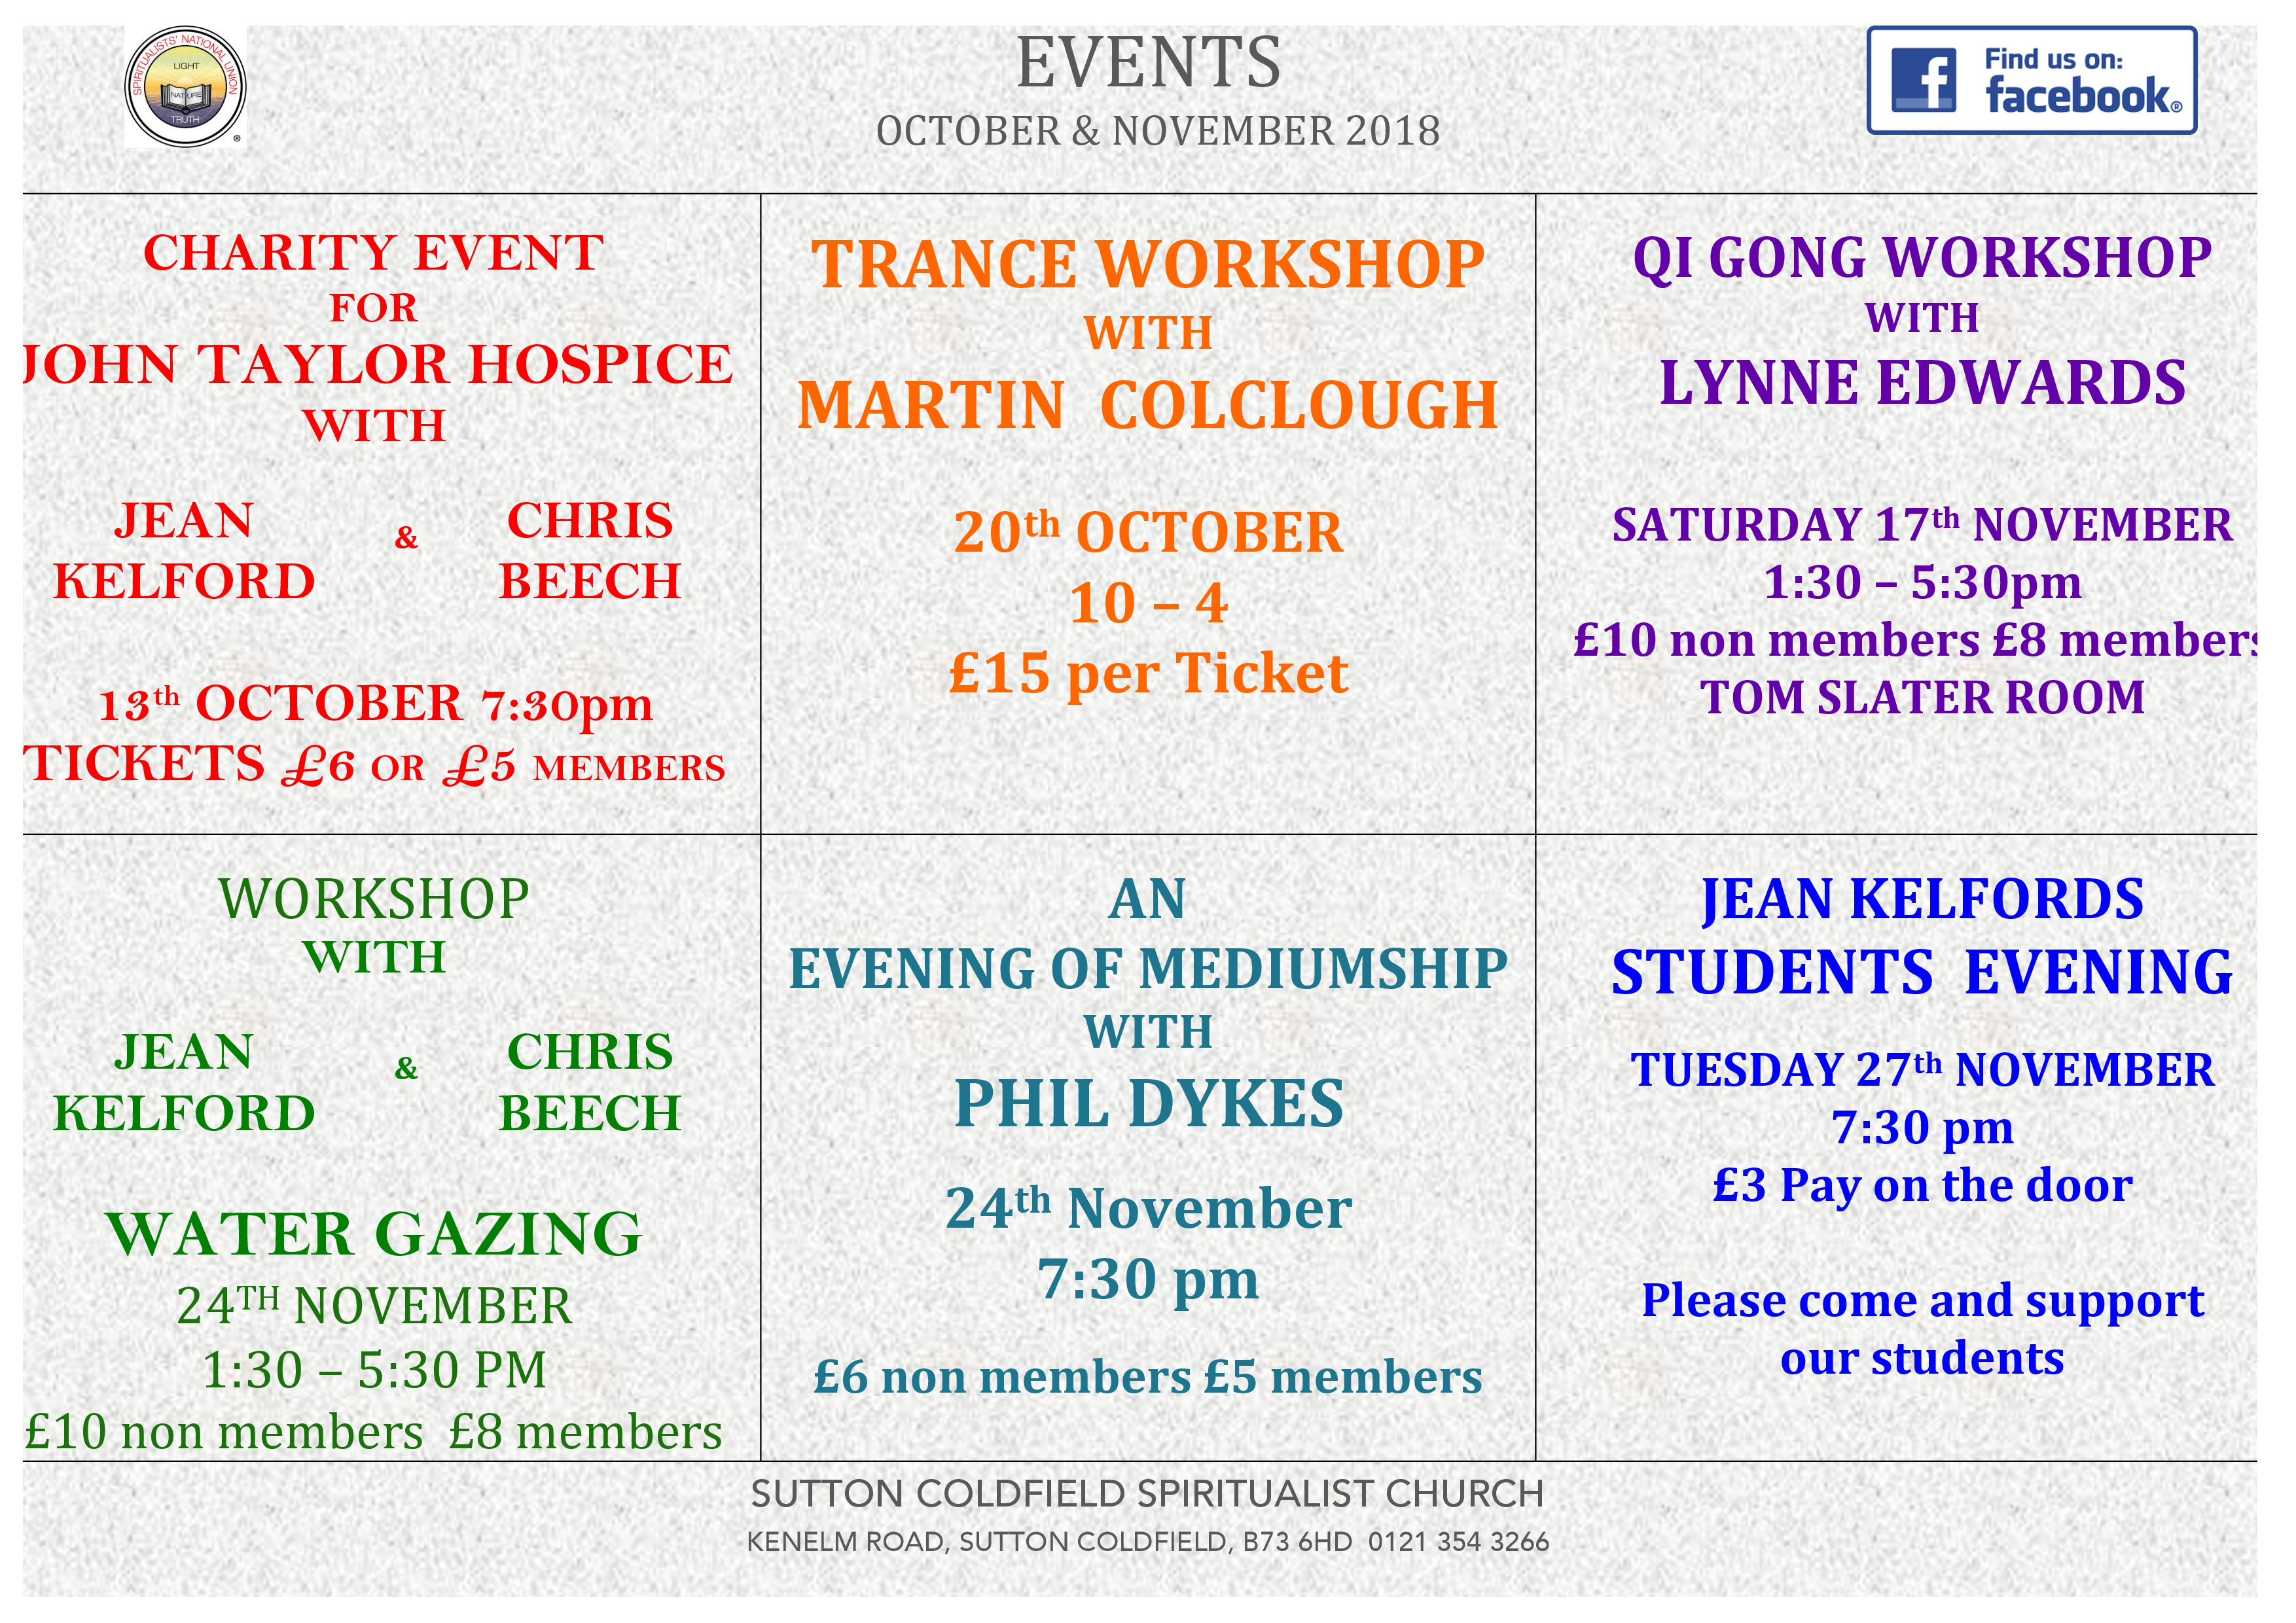 EVENTS OCTOBER november2018-page-0